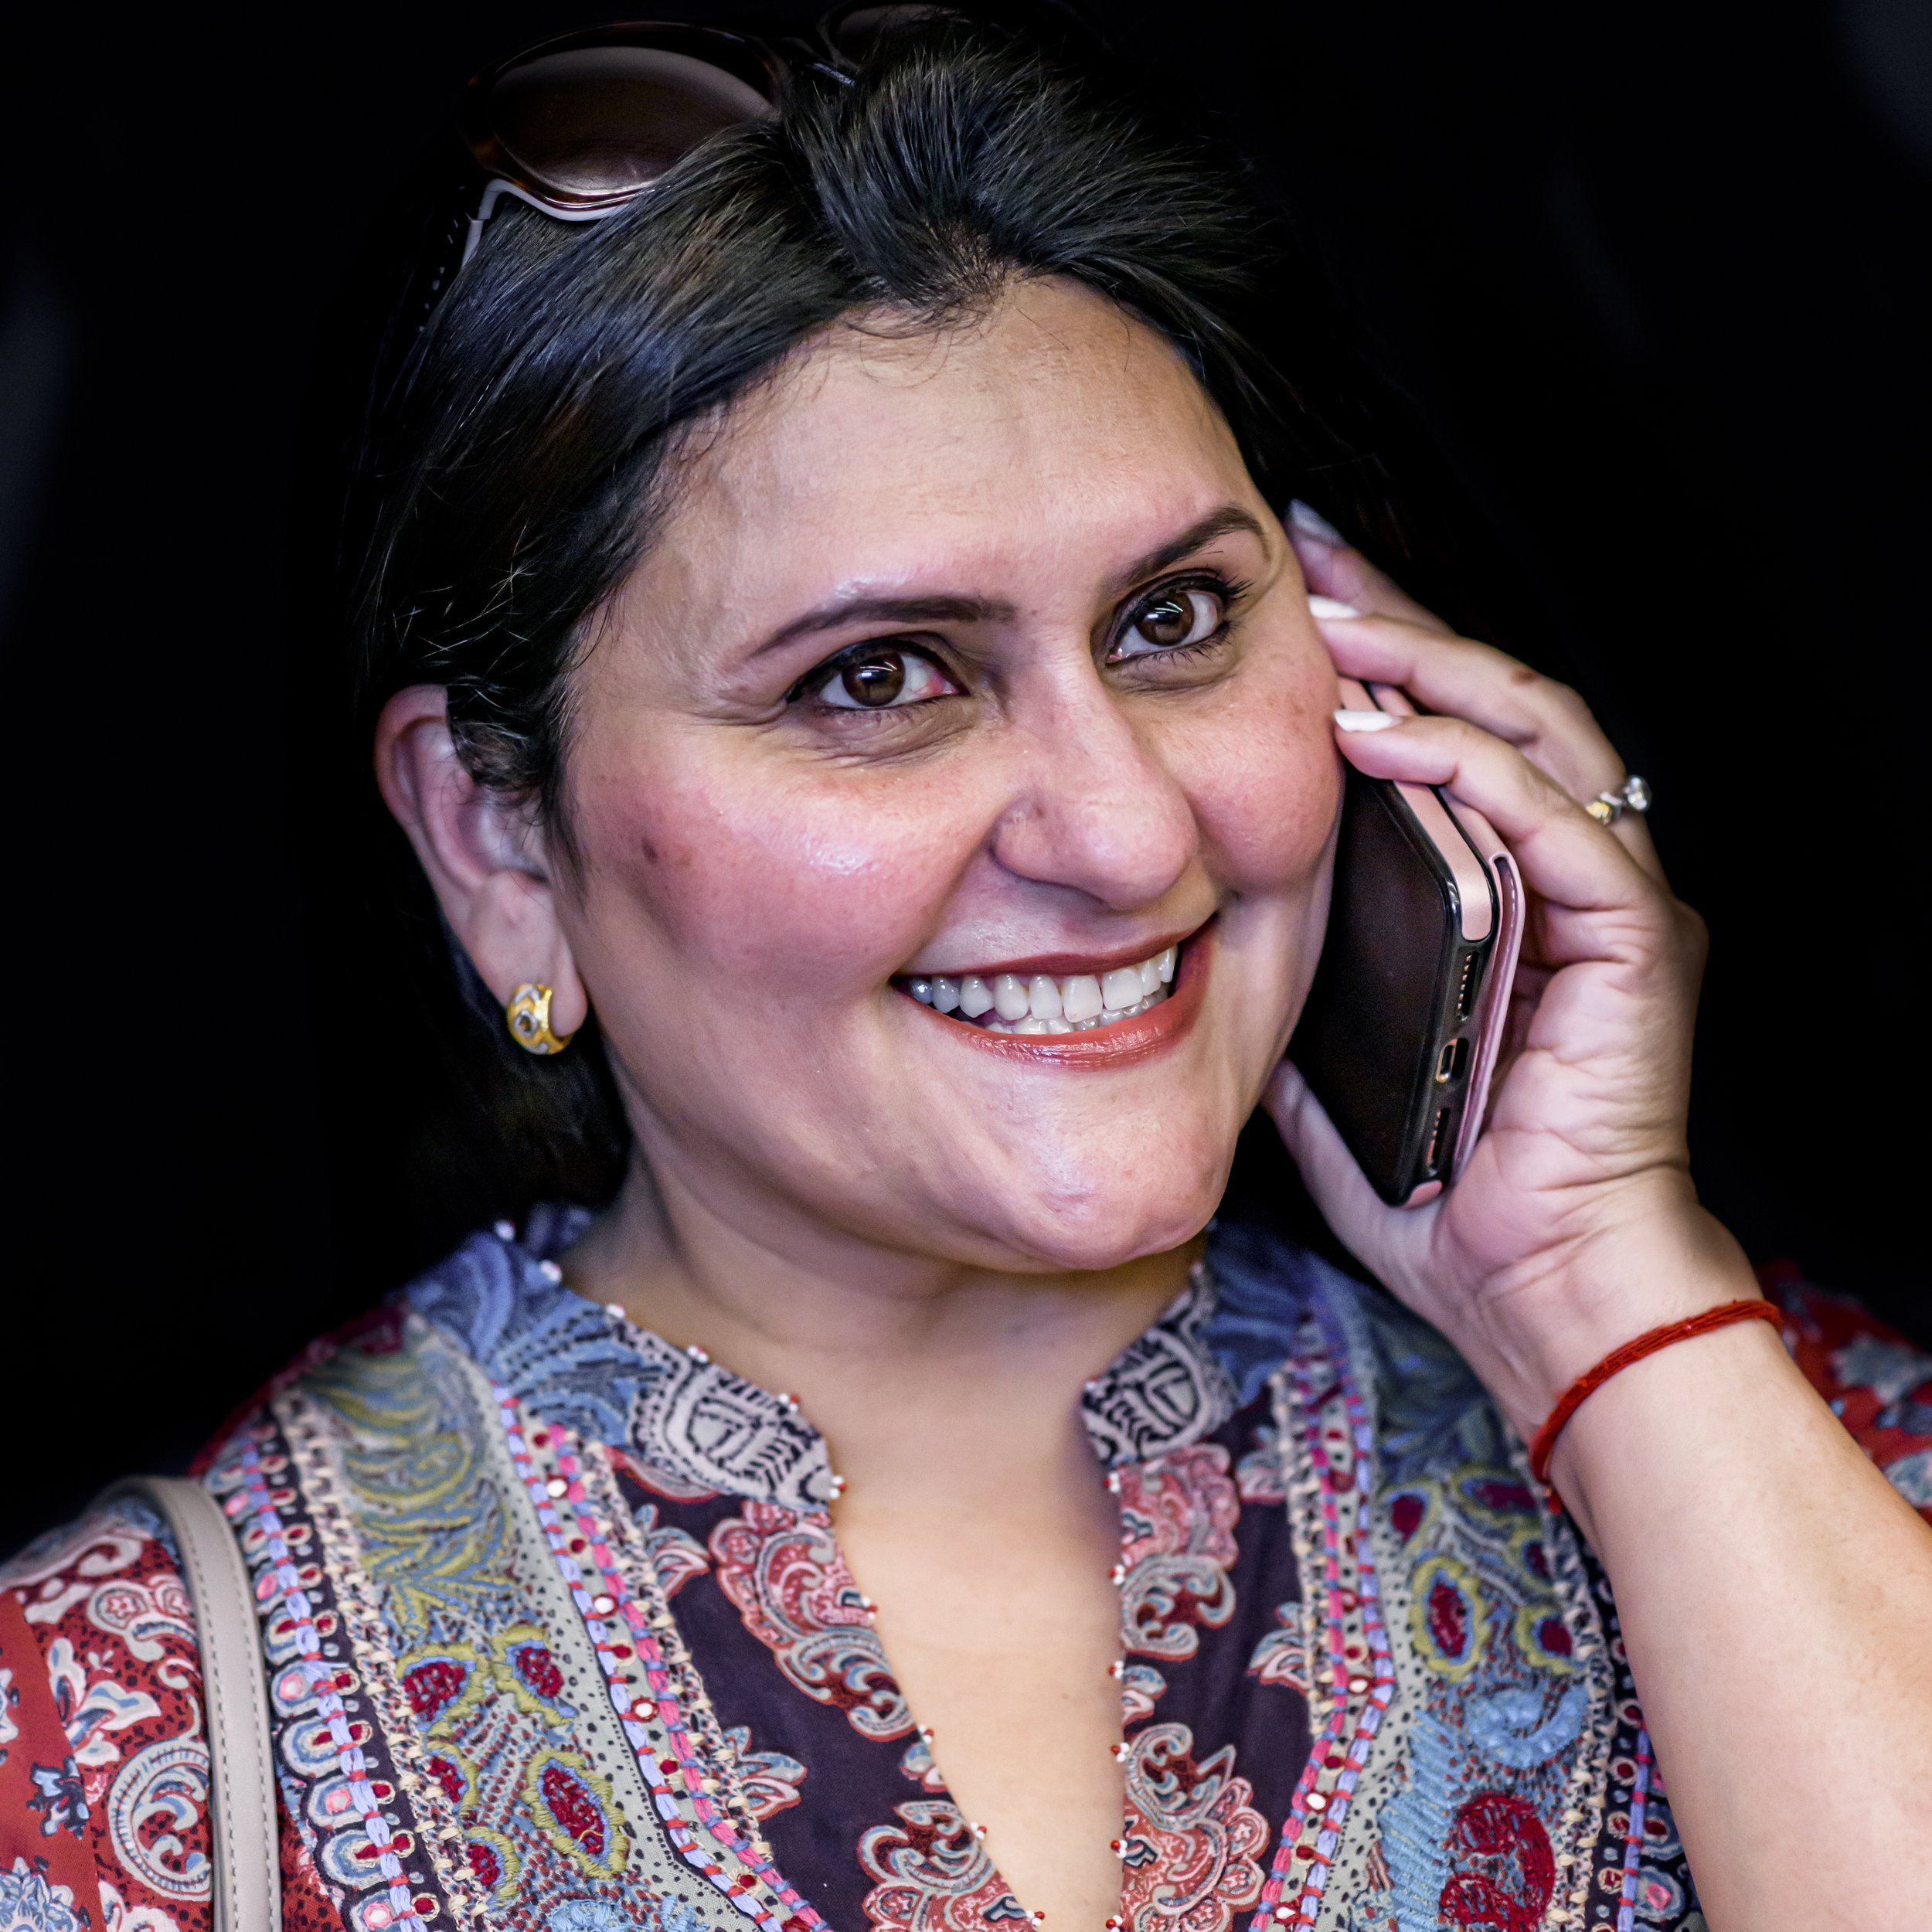 Dolly - The Networker. She's always using her connections to help people, even strangers. Or is she?Played by Rita Bhatia